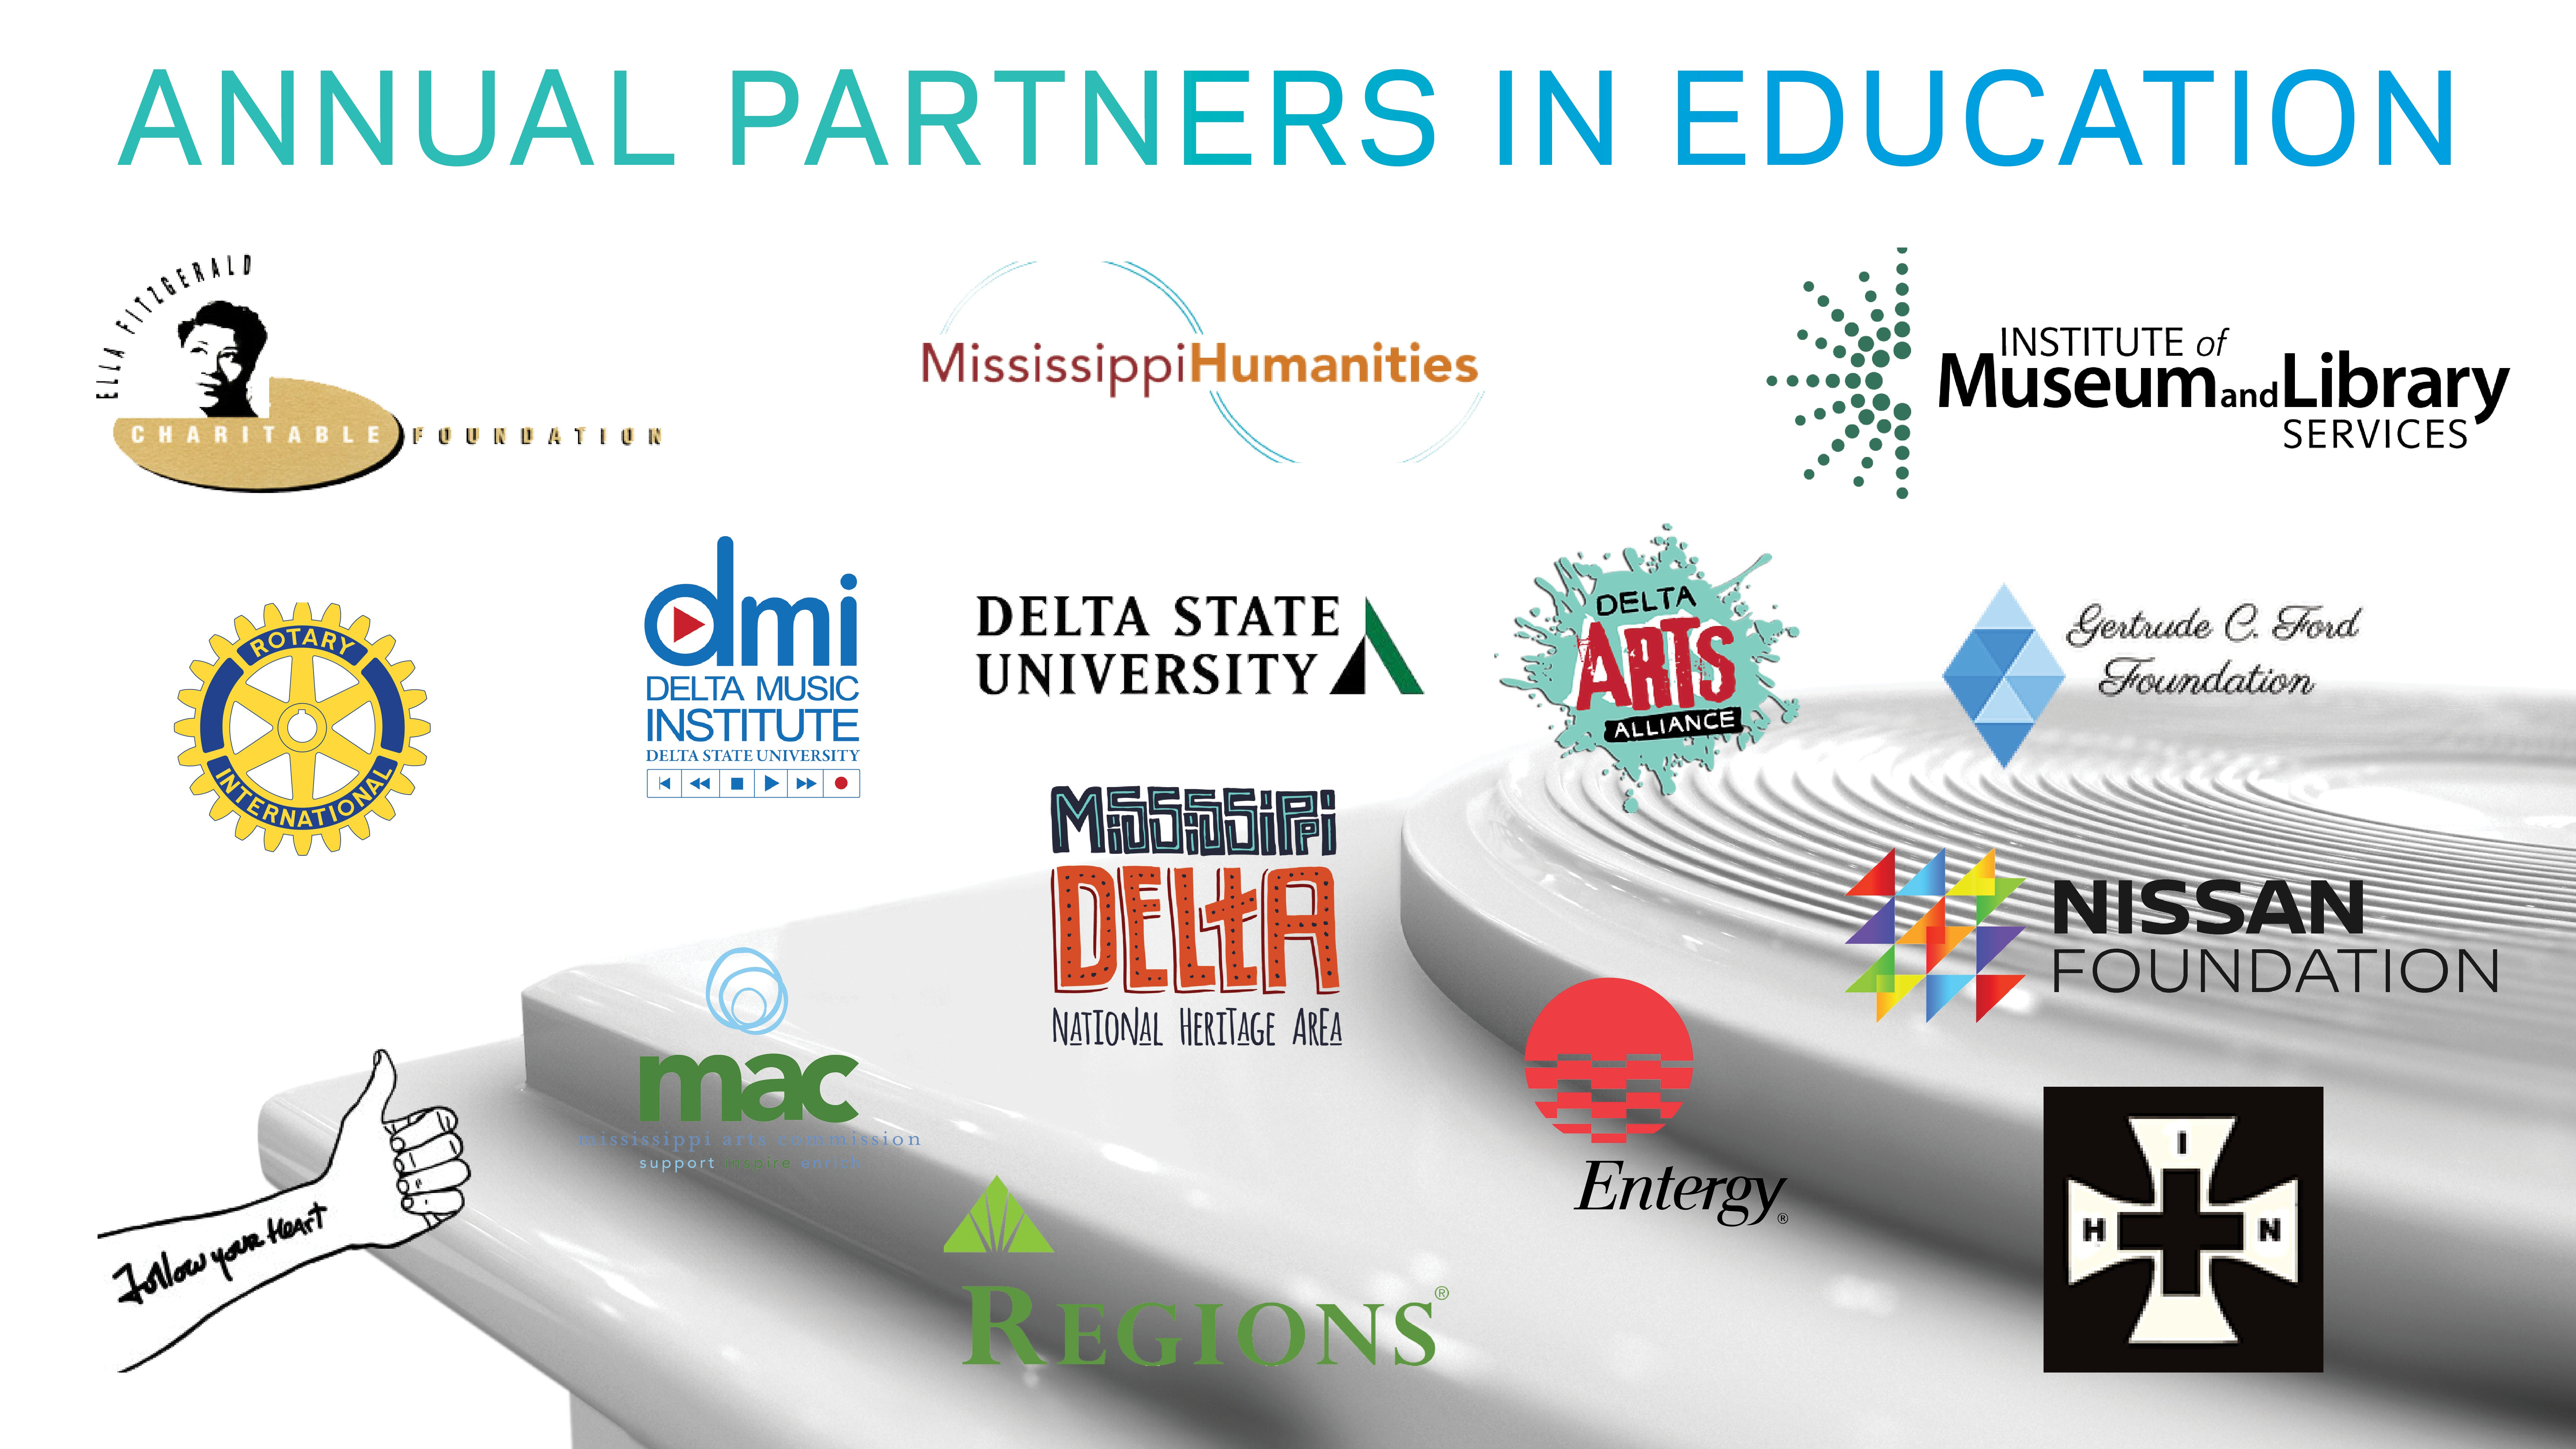 Annual Partners in Education_Lobby_7.24.19.jpg